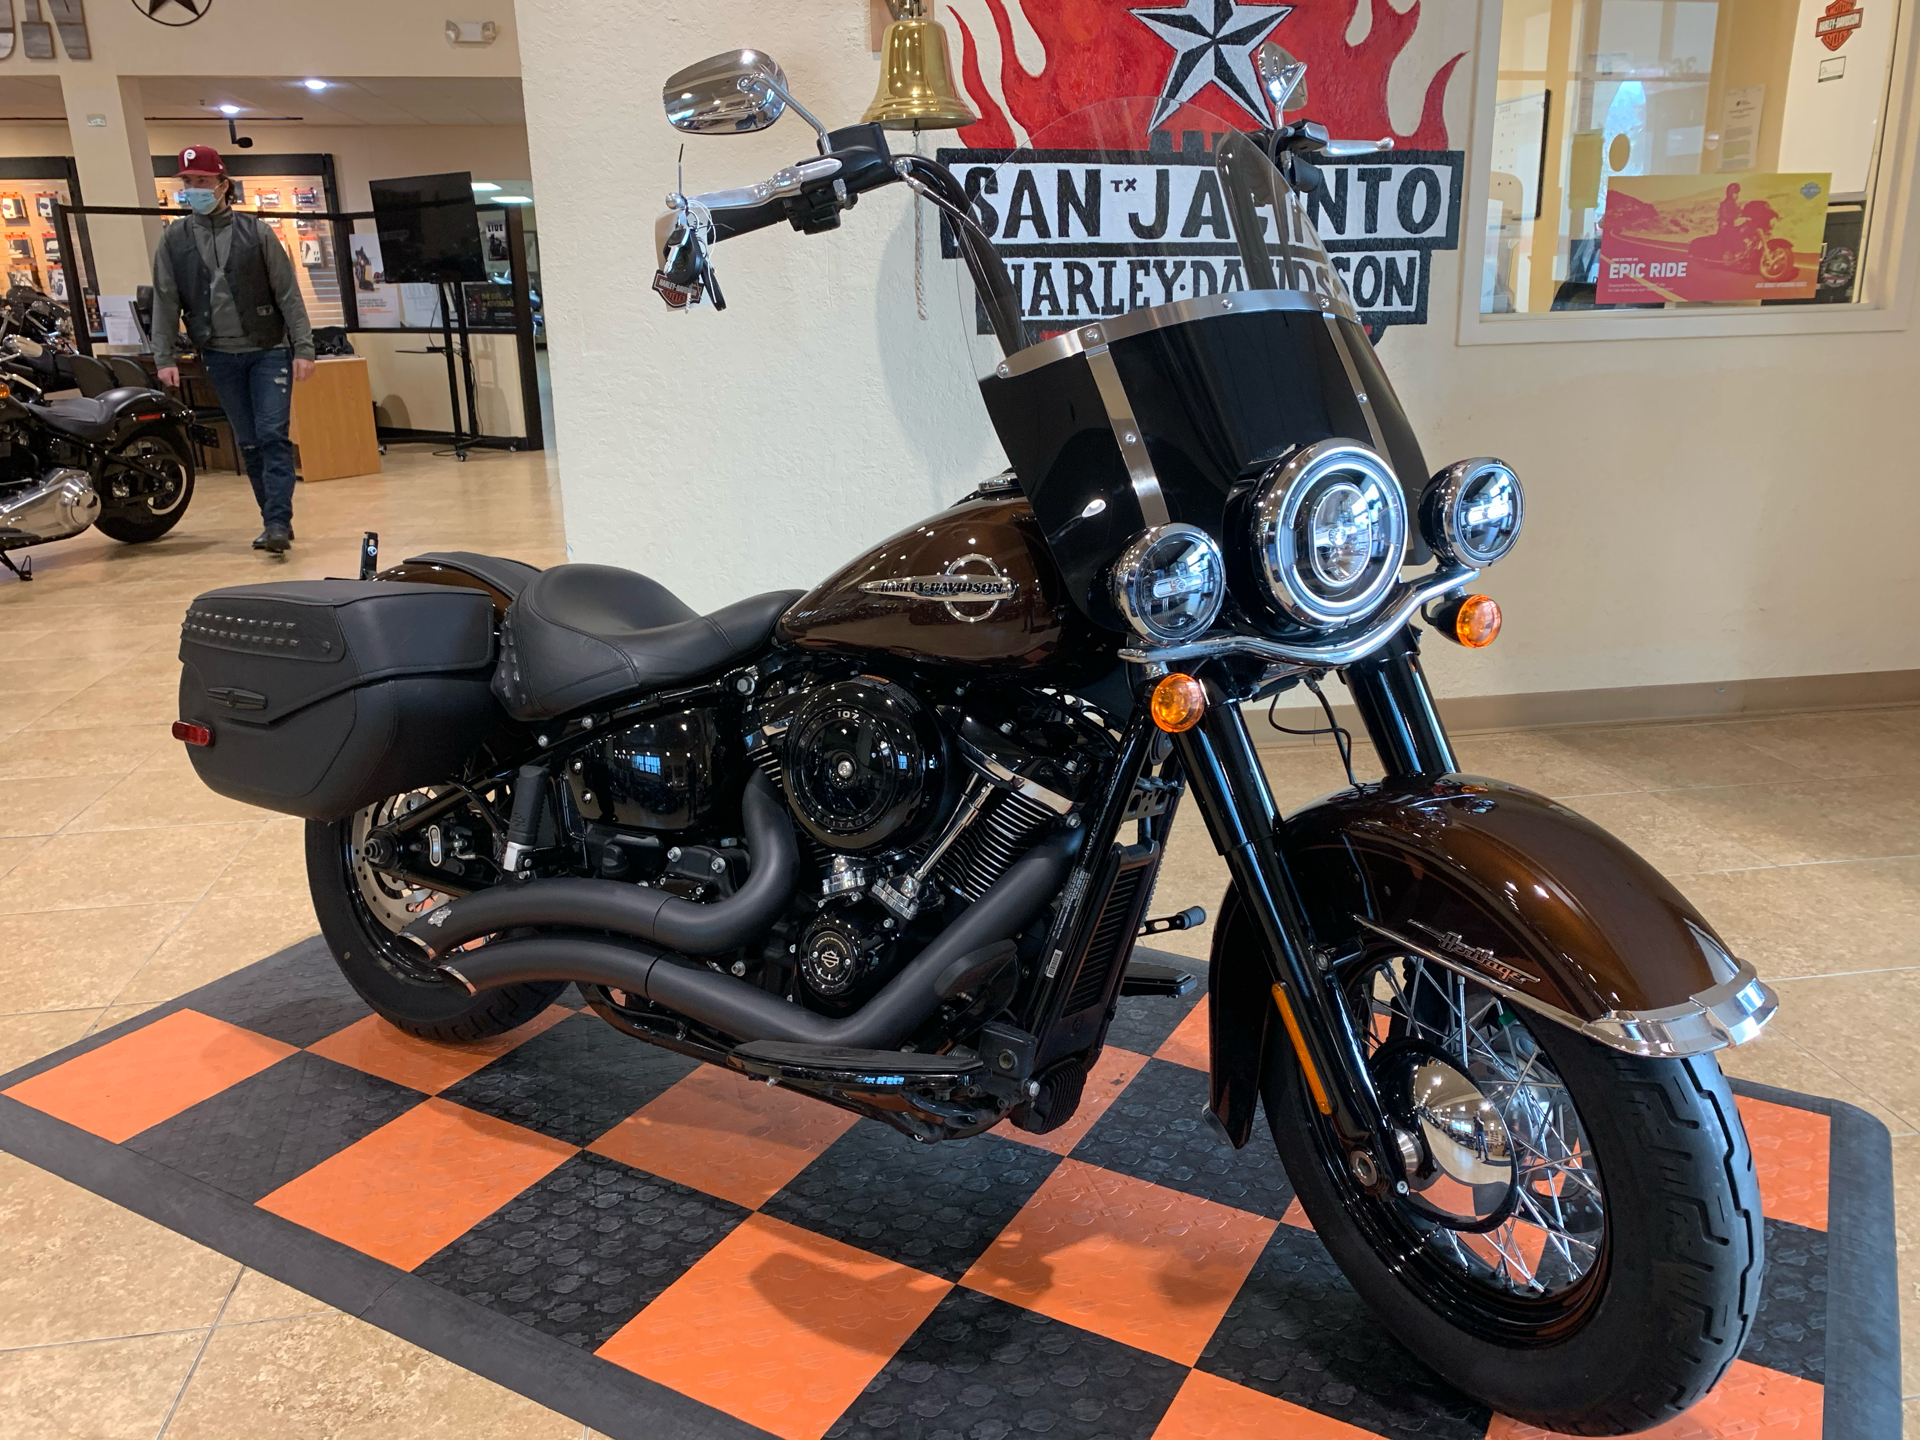 2019 Harley-Davidson Heritage Classic 107 in Pasadena, Texas - Photo 2